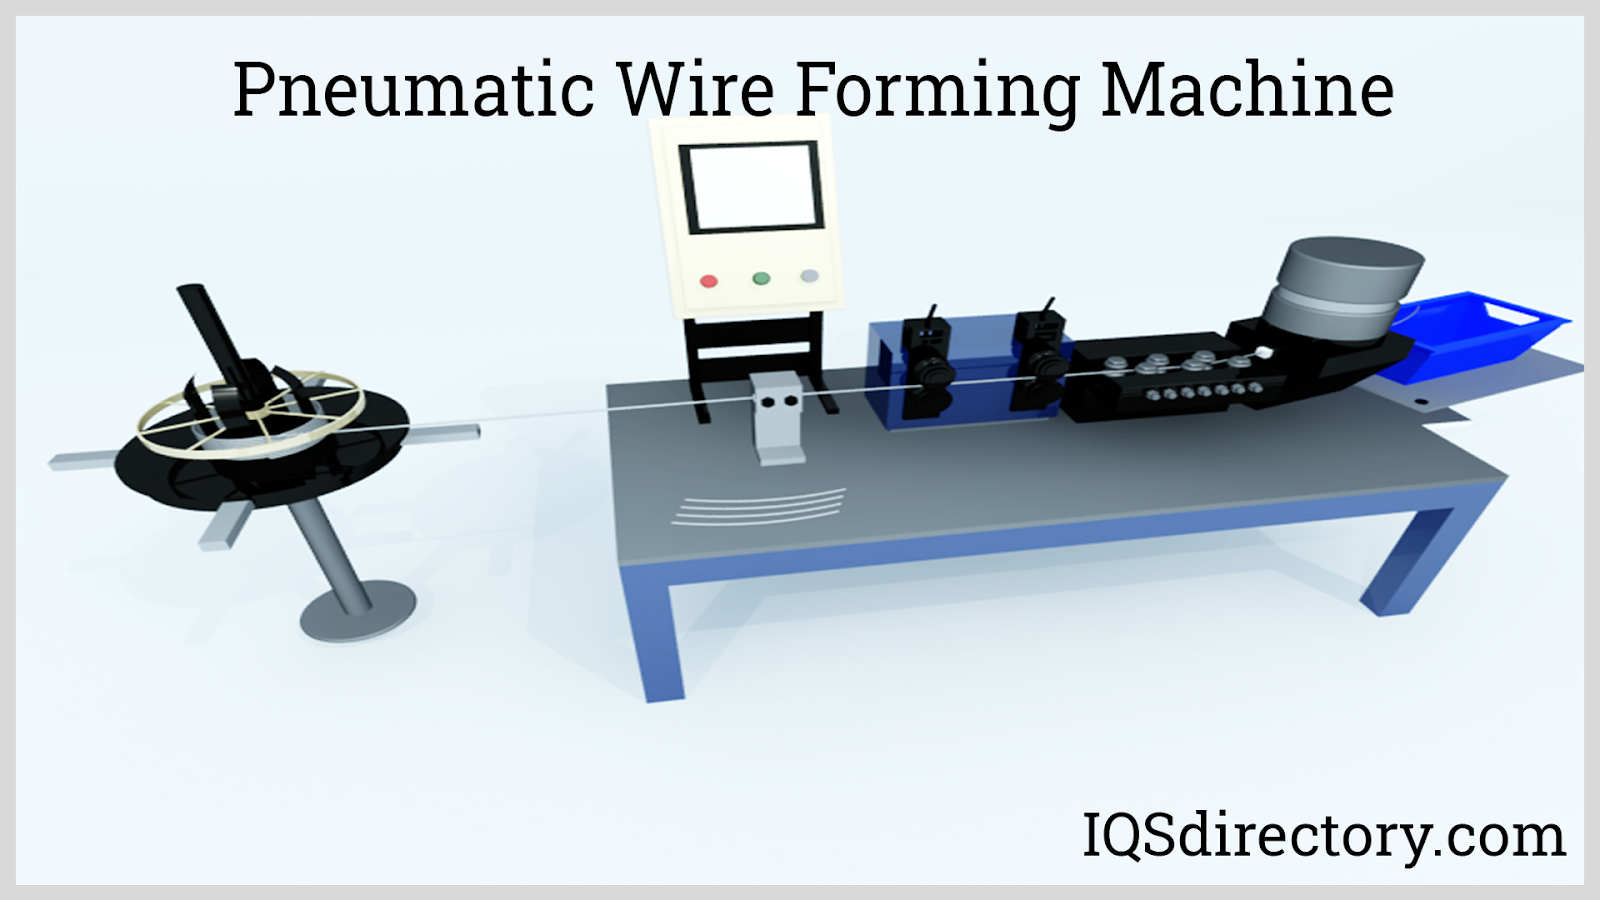 Pneumatic Wire Forming Machine